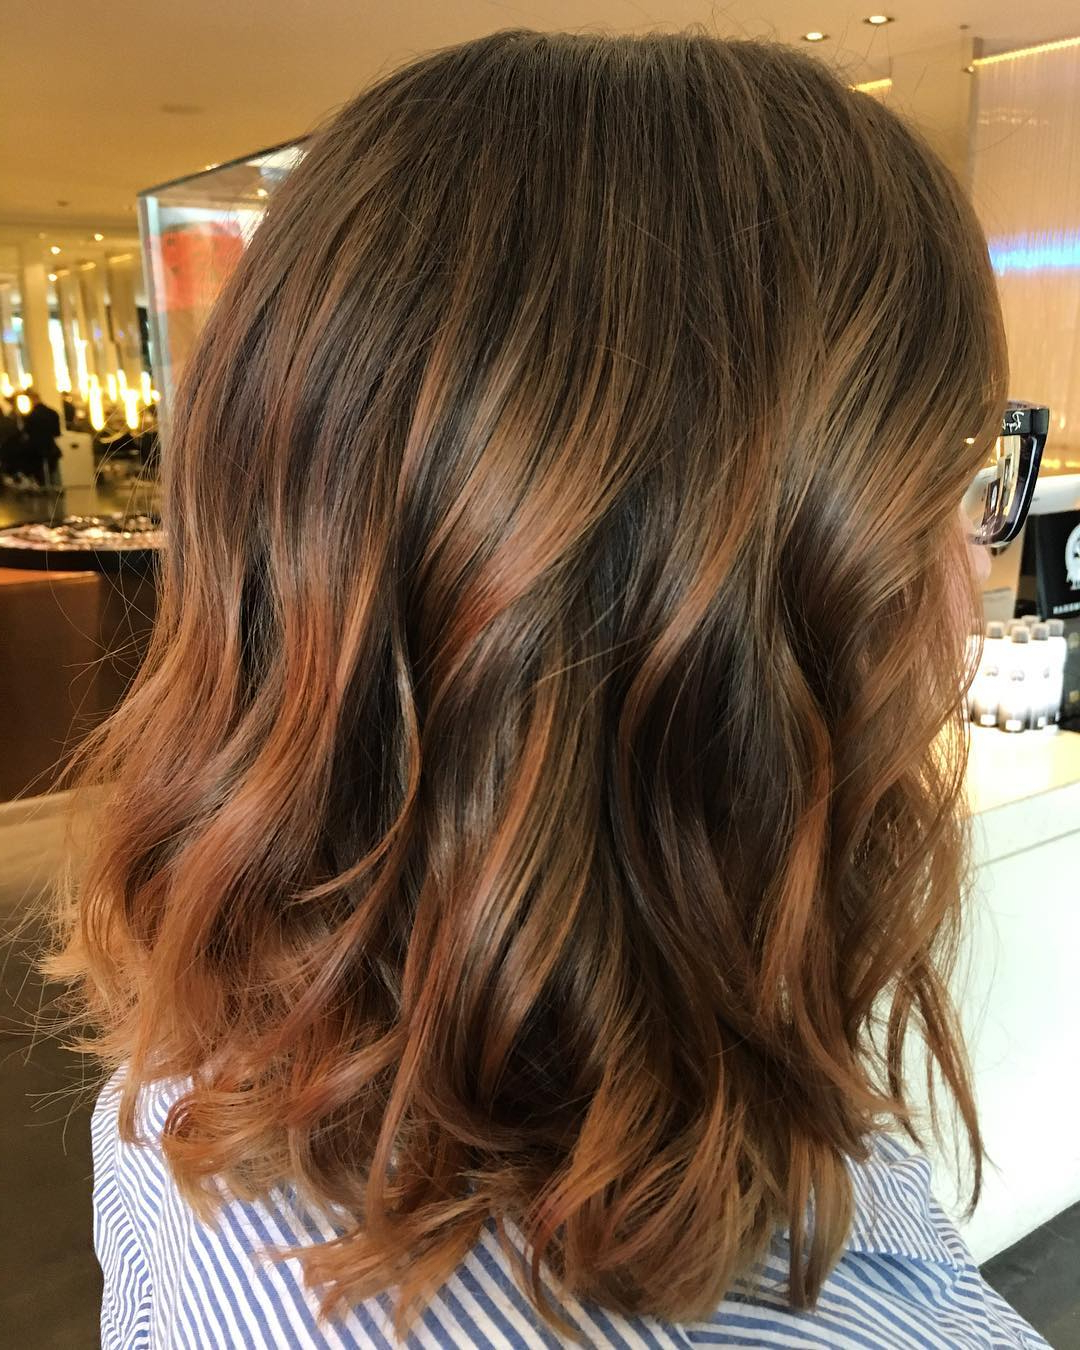 Most Recently Released Shoulder Length Layered Hairstyles Throughout 25 Exciting Medium Length Layered Haircuts – Popular Haircuts (View 11 of 20)